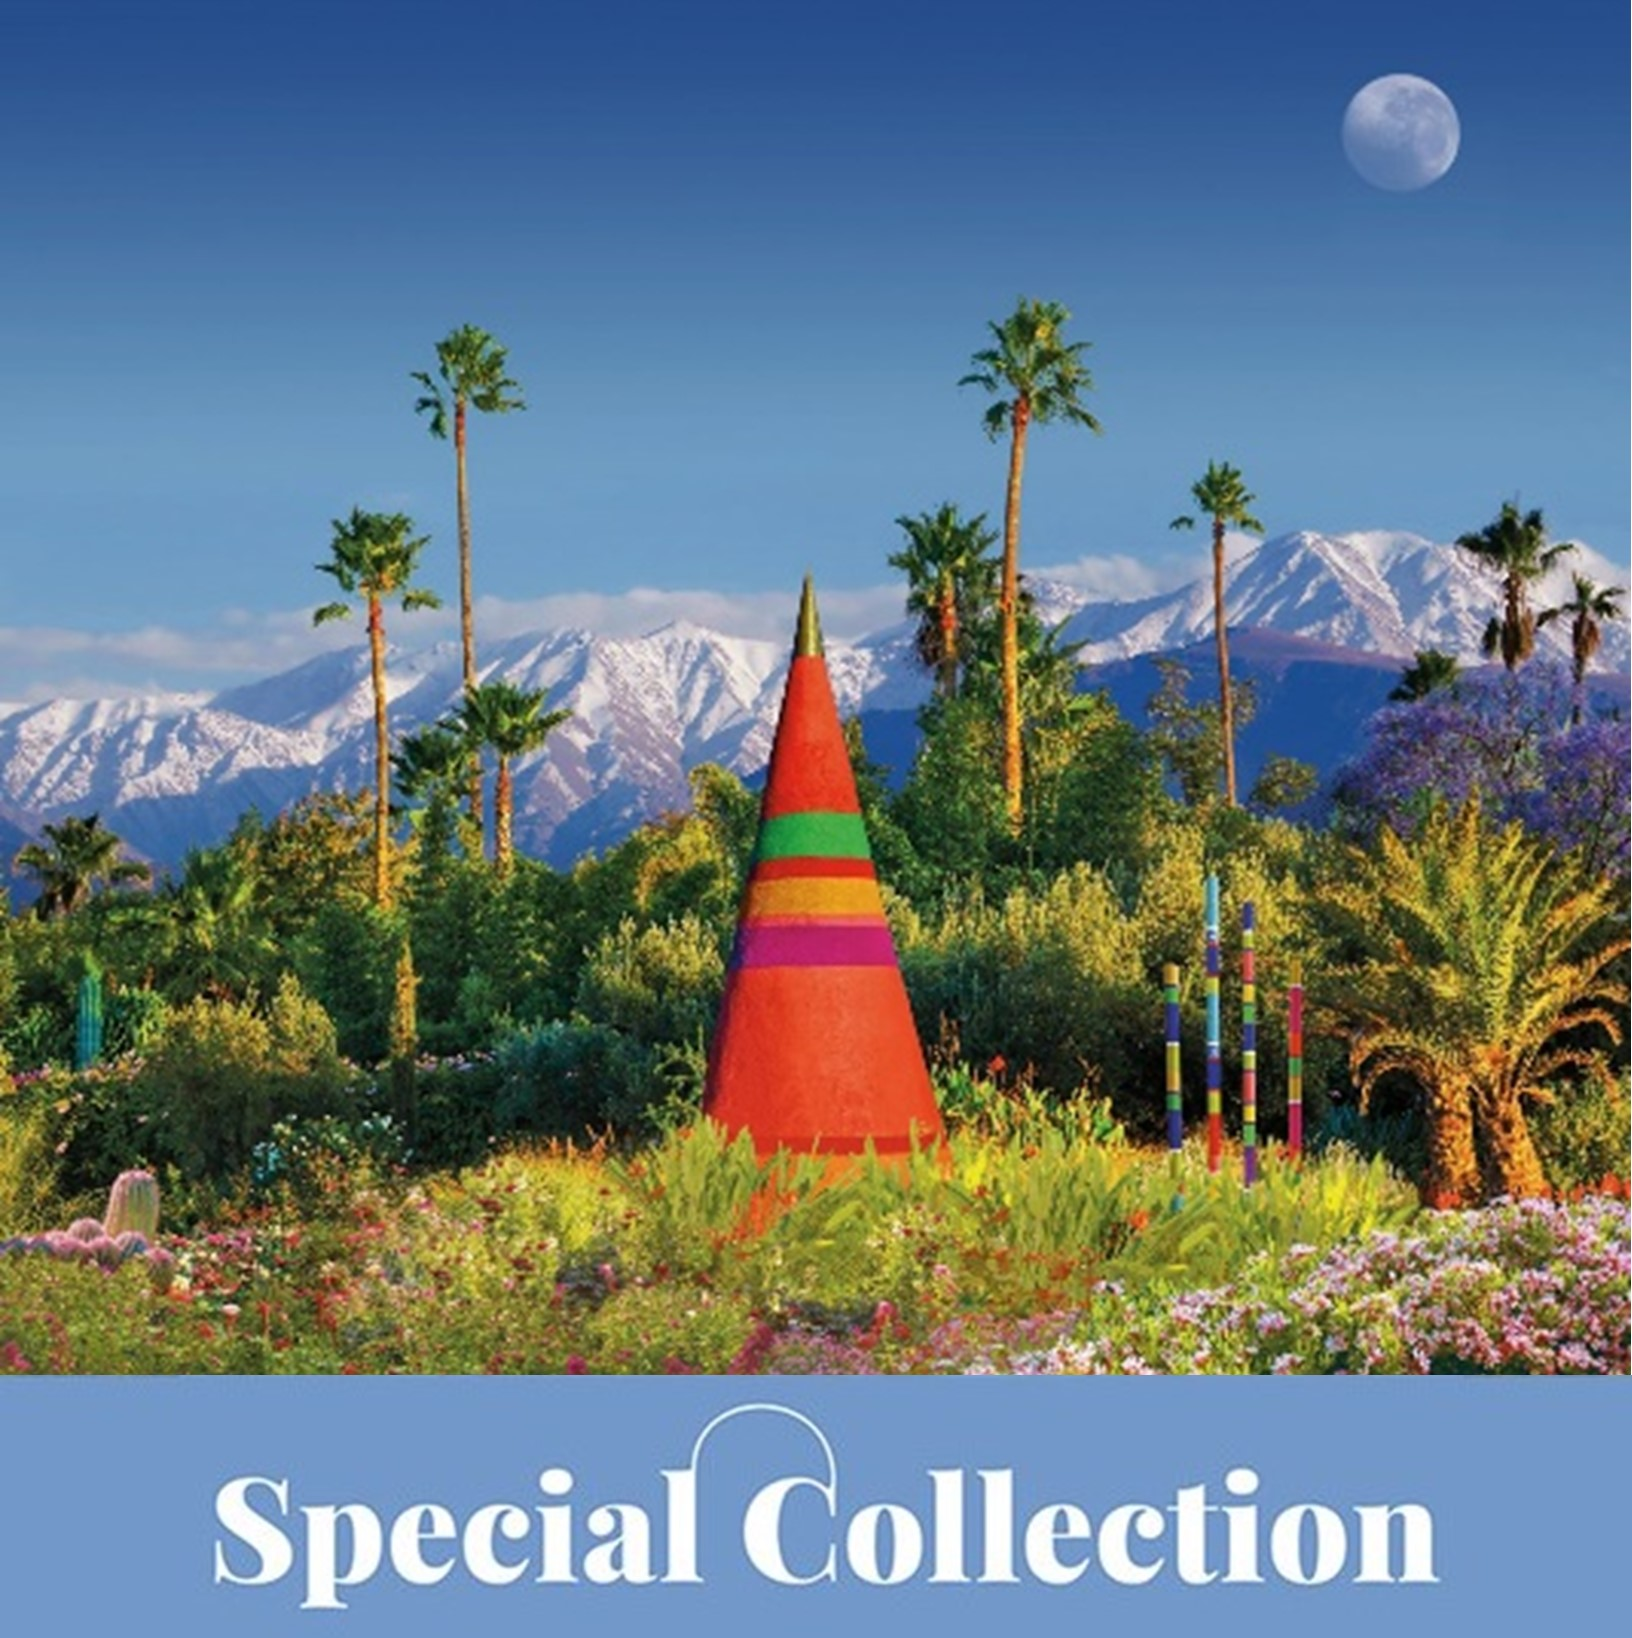 Special Collection: Gartenreise Marrakesch